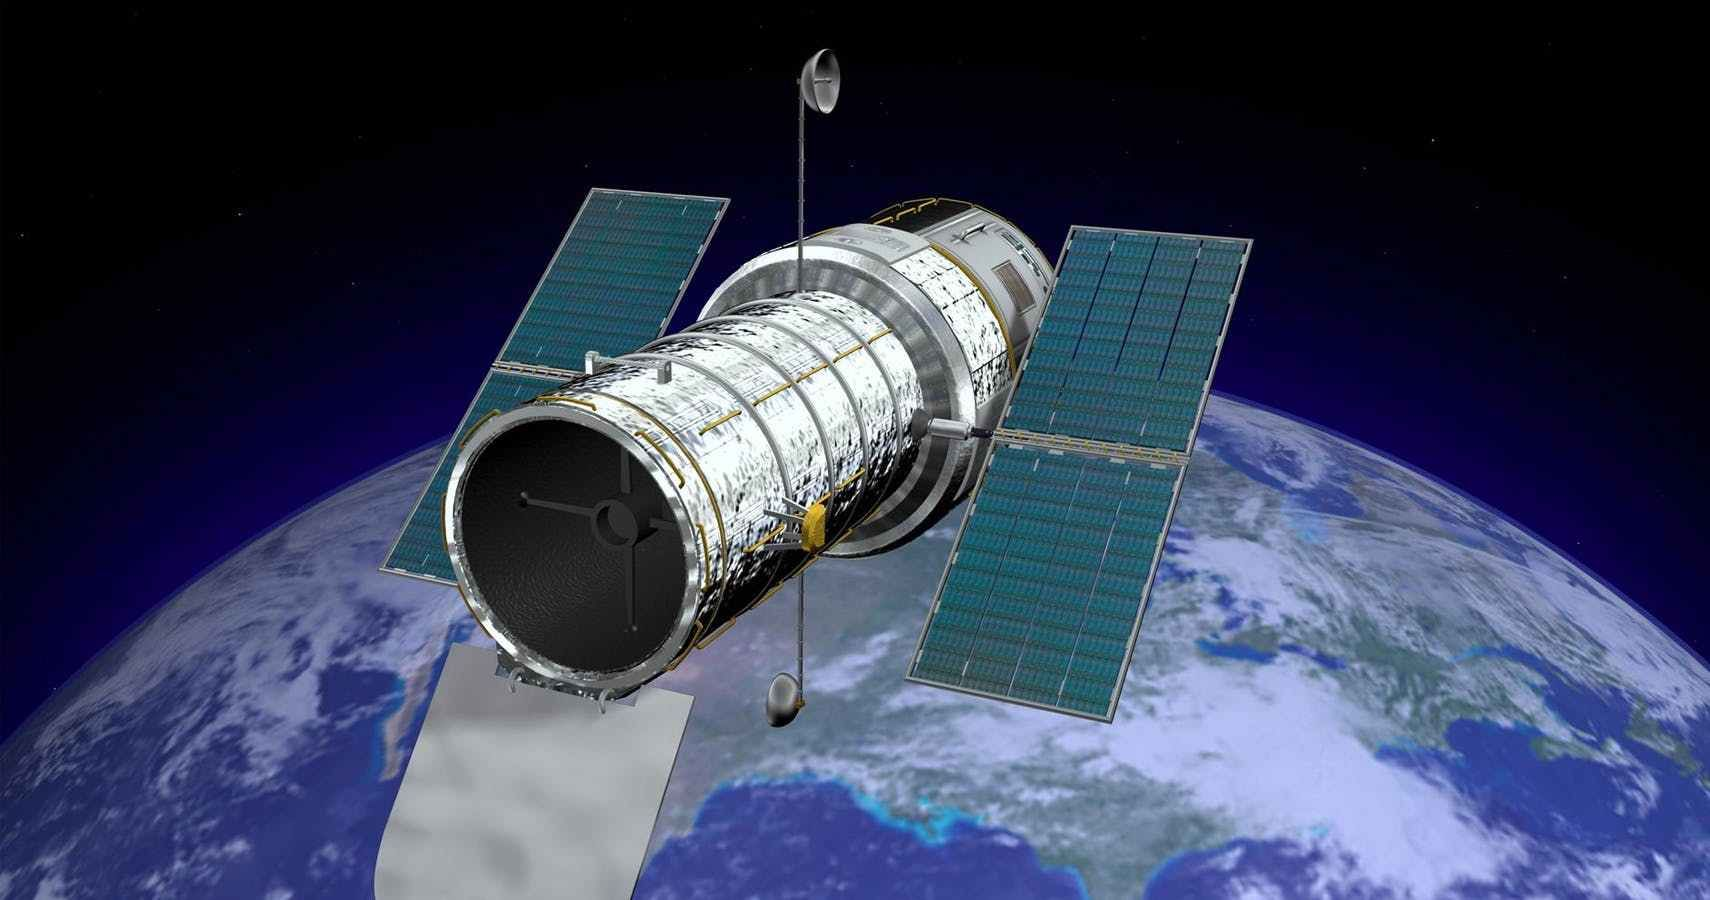 Hubble Telescope - How far it can see, location and size - BBC Science Focus Magazine